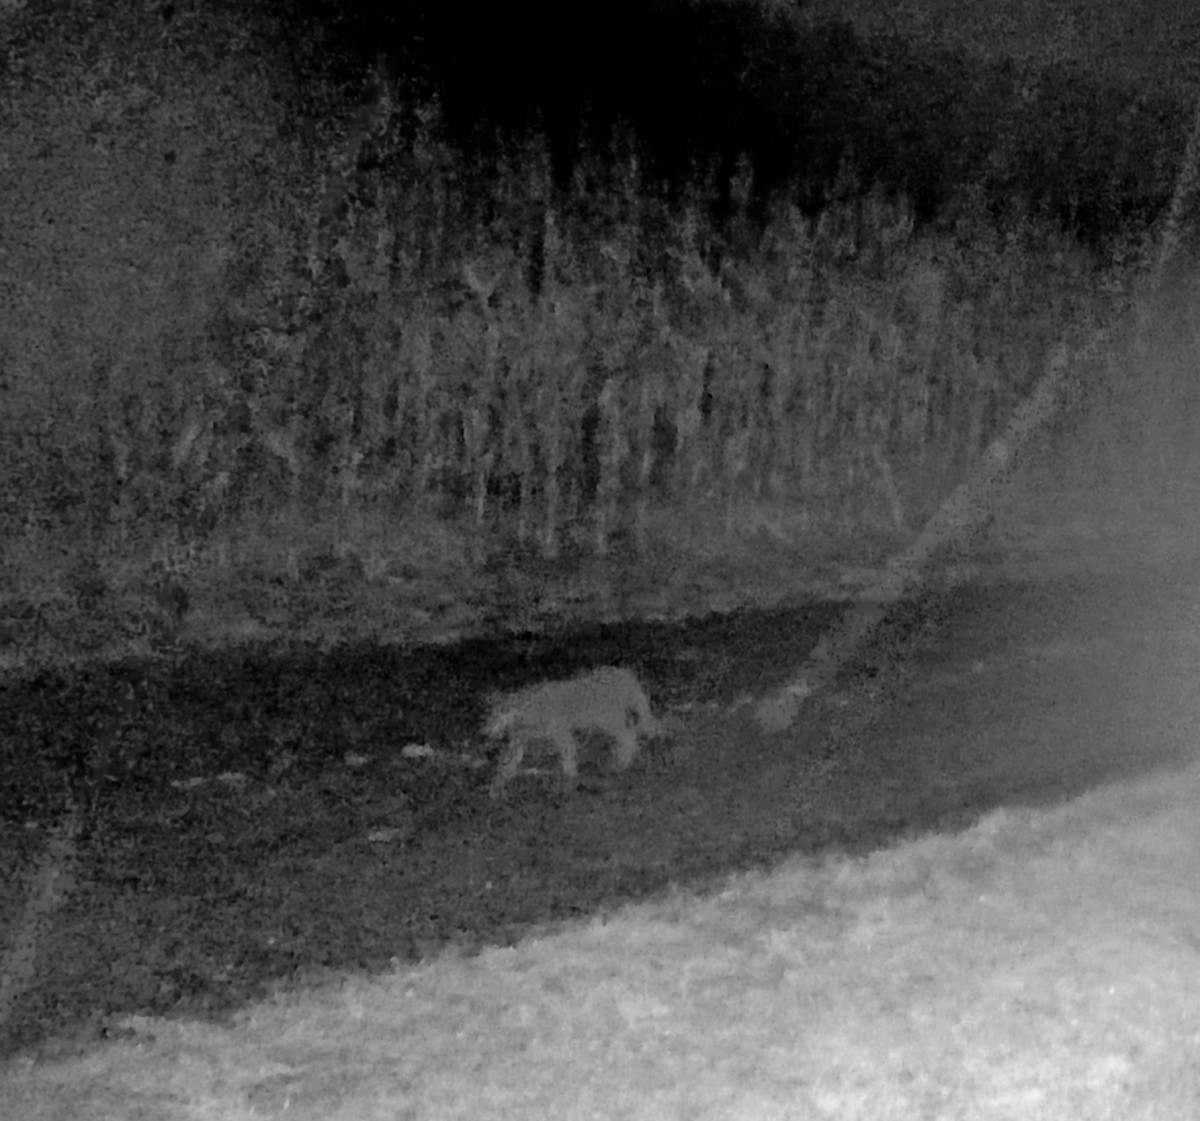 It was a dark and rainy night when Gail's trail camera caught this image.